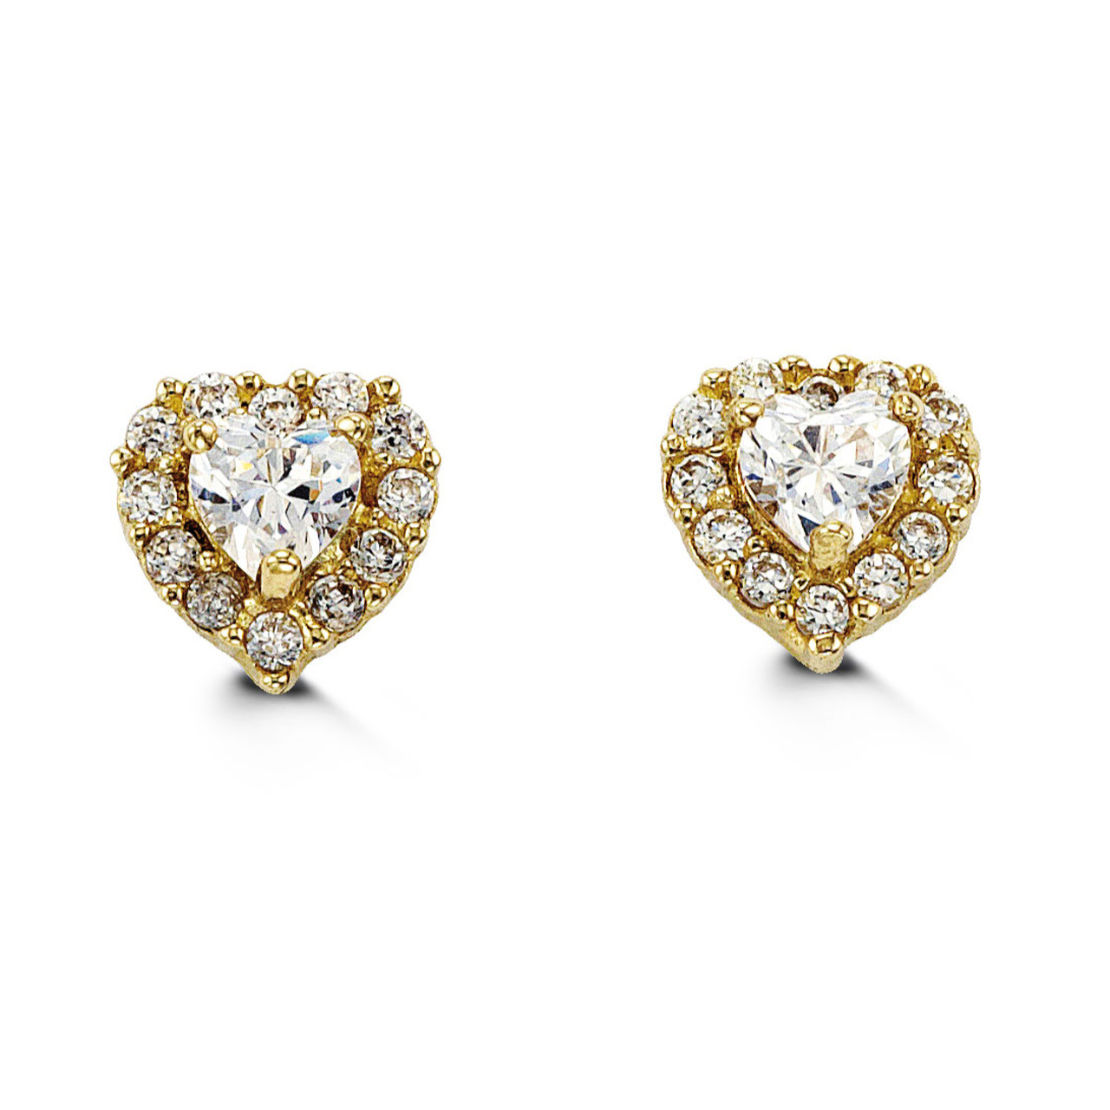 Gold and Cubic Zirconia Heart Earrings